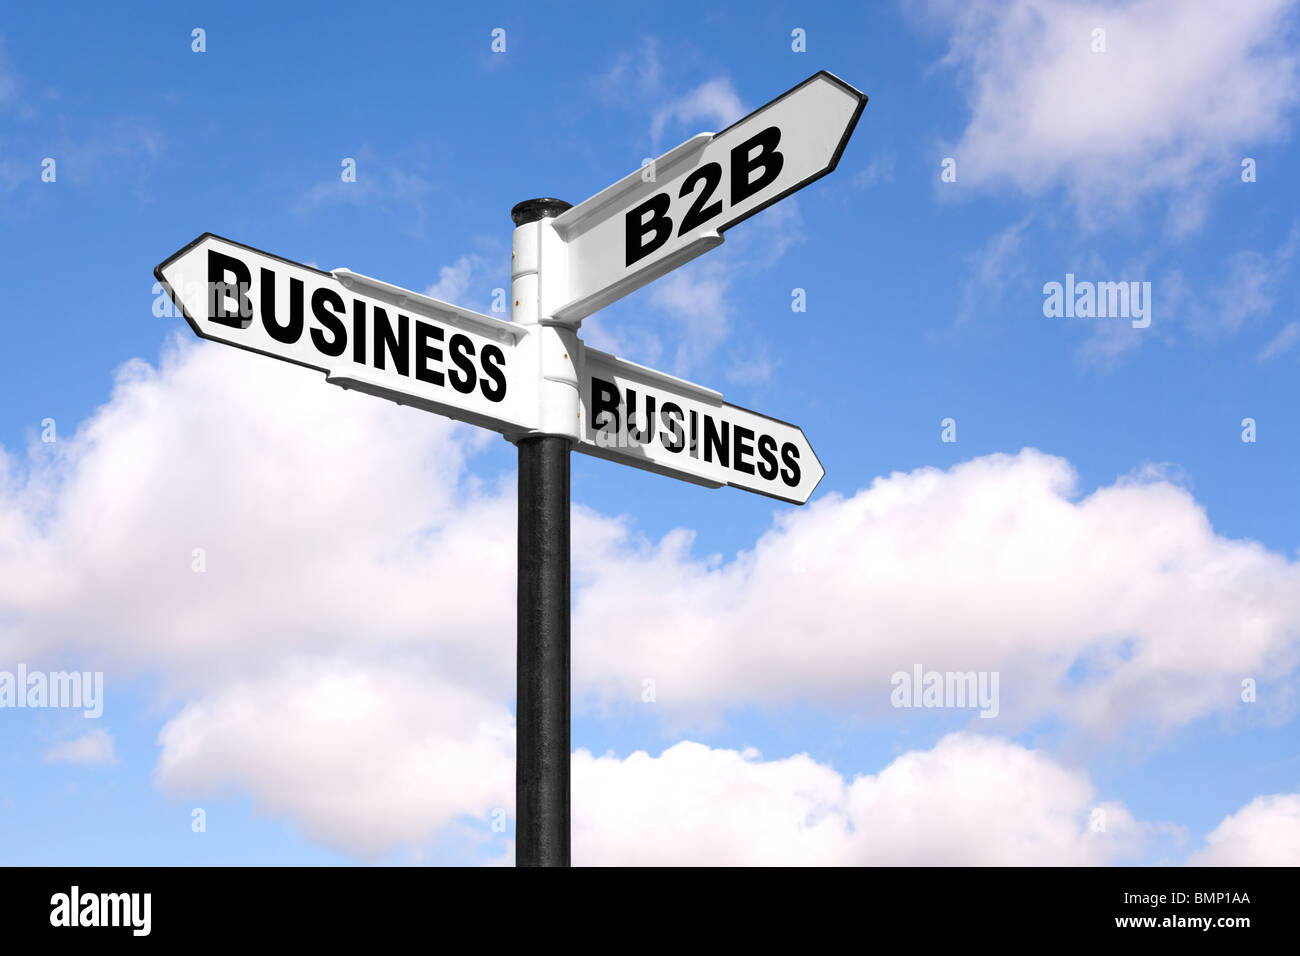 Concept image of a black and white signpost with the words B2B Business 2 Business against a blue cloudy sky. - Stock Image